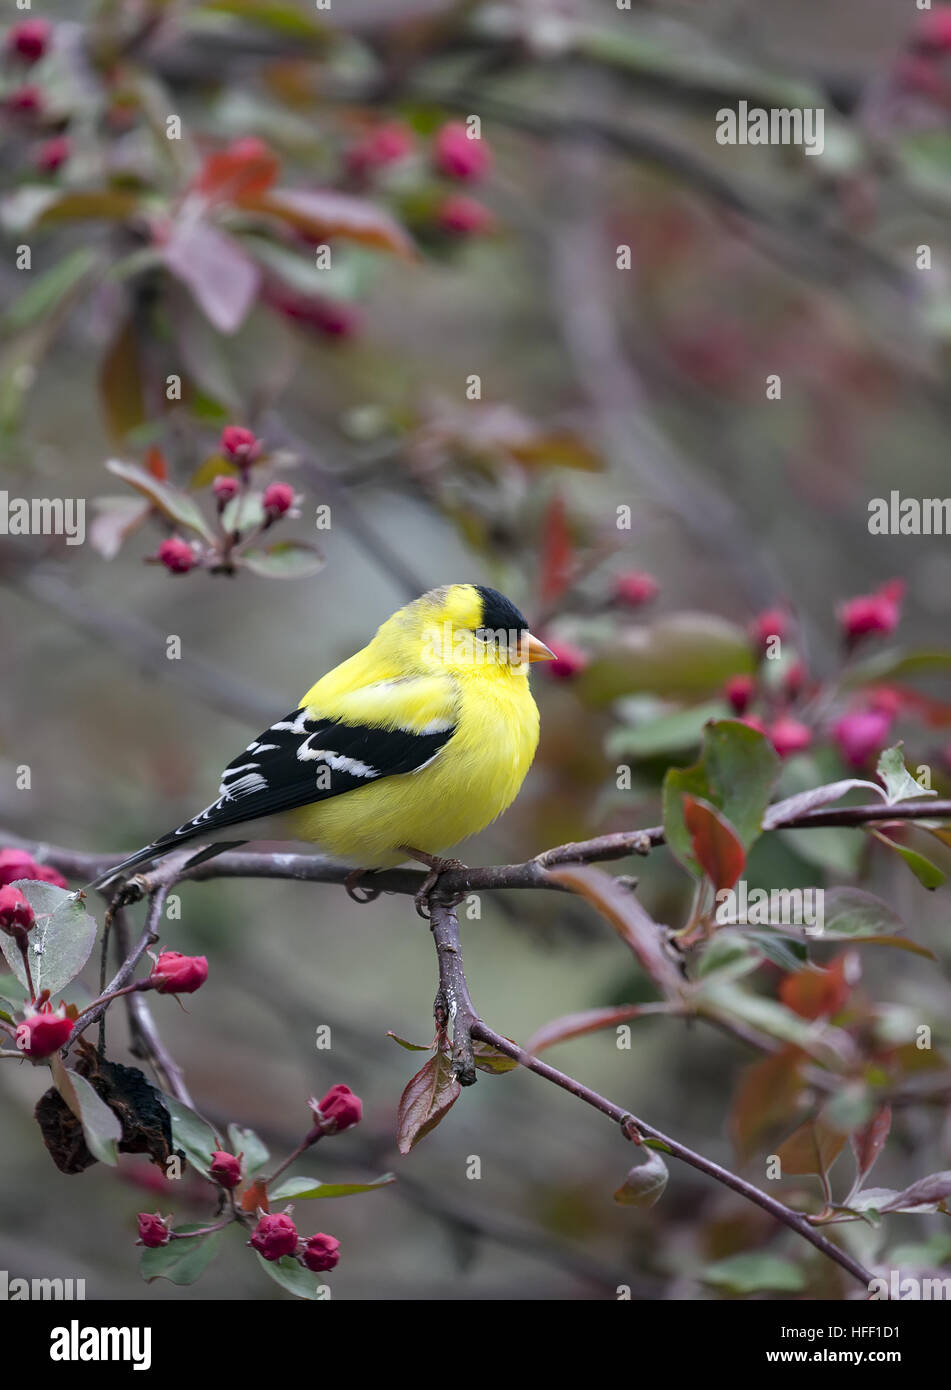 Adult, male American Goldfinch, Spinus tristis, state bird of New Jersey, USA. - Stock Image